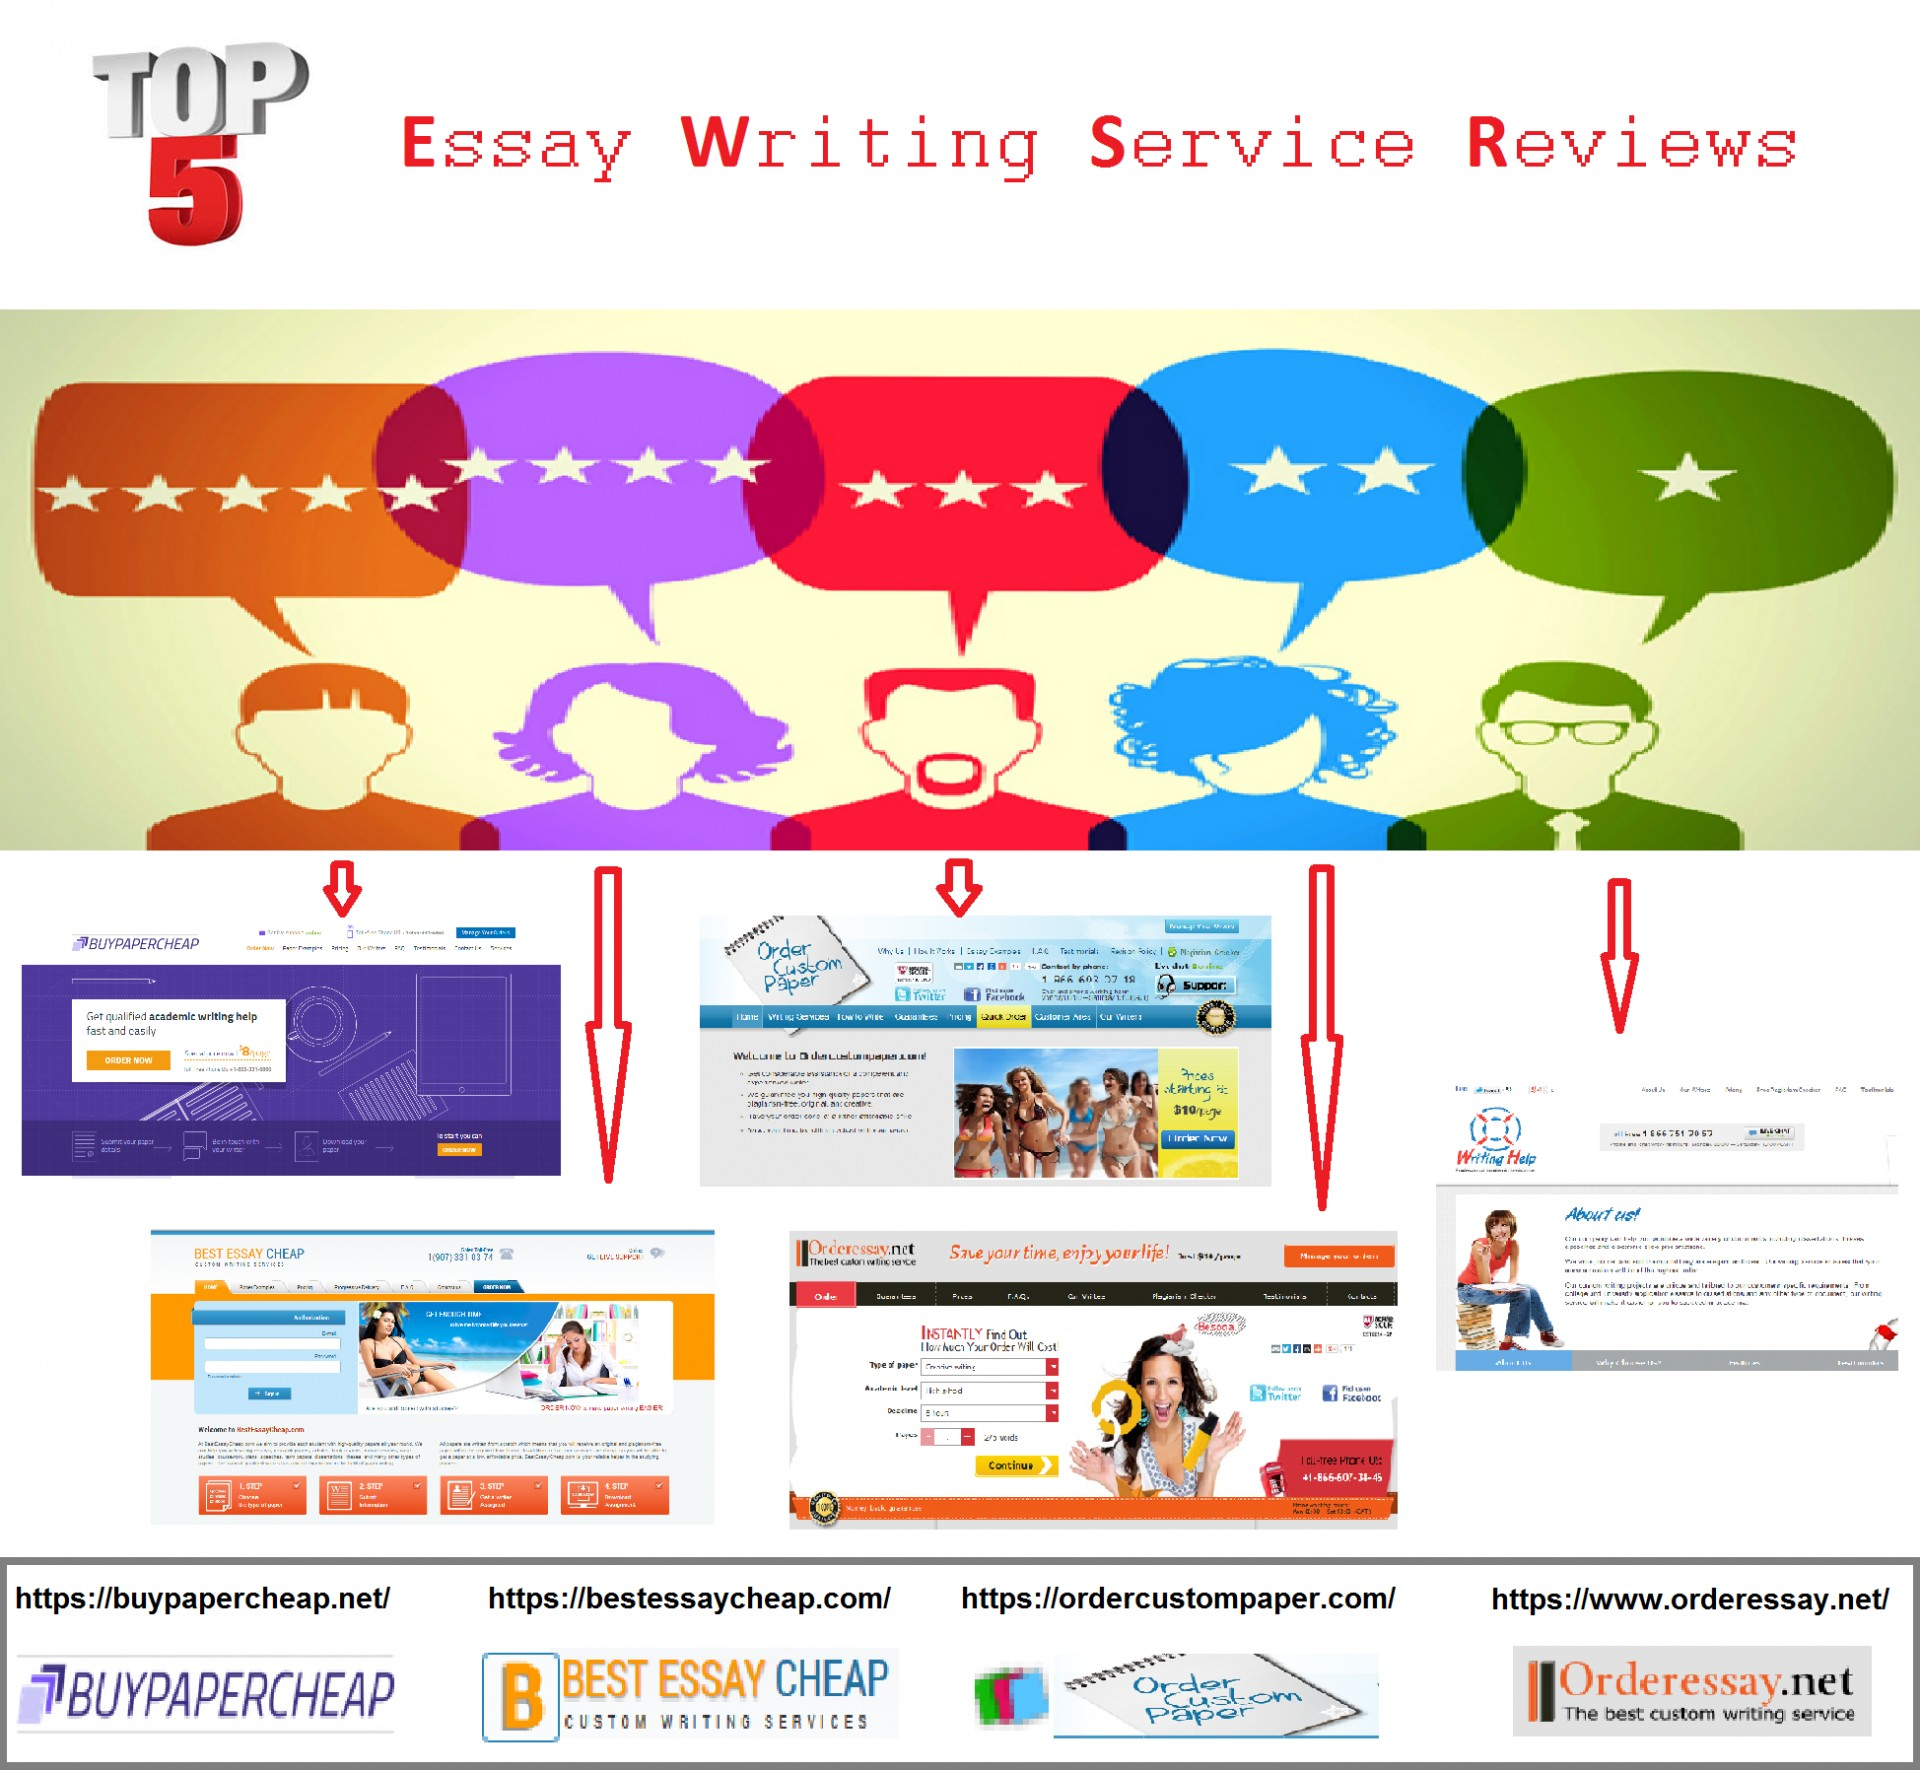 001 Essay Writing Service Reviews Custom Services From Best Essays Paper Sites Company Ideas Of Sale Discount Br Singular Pro Uk Top 1920